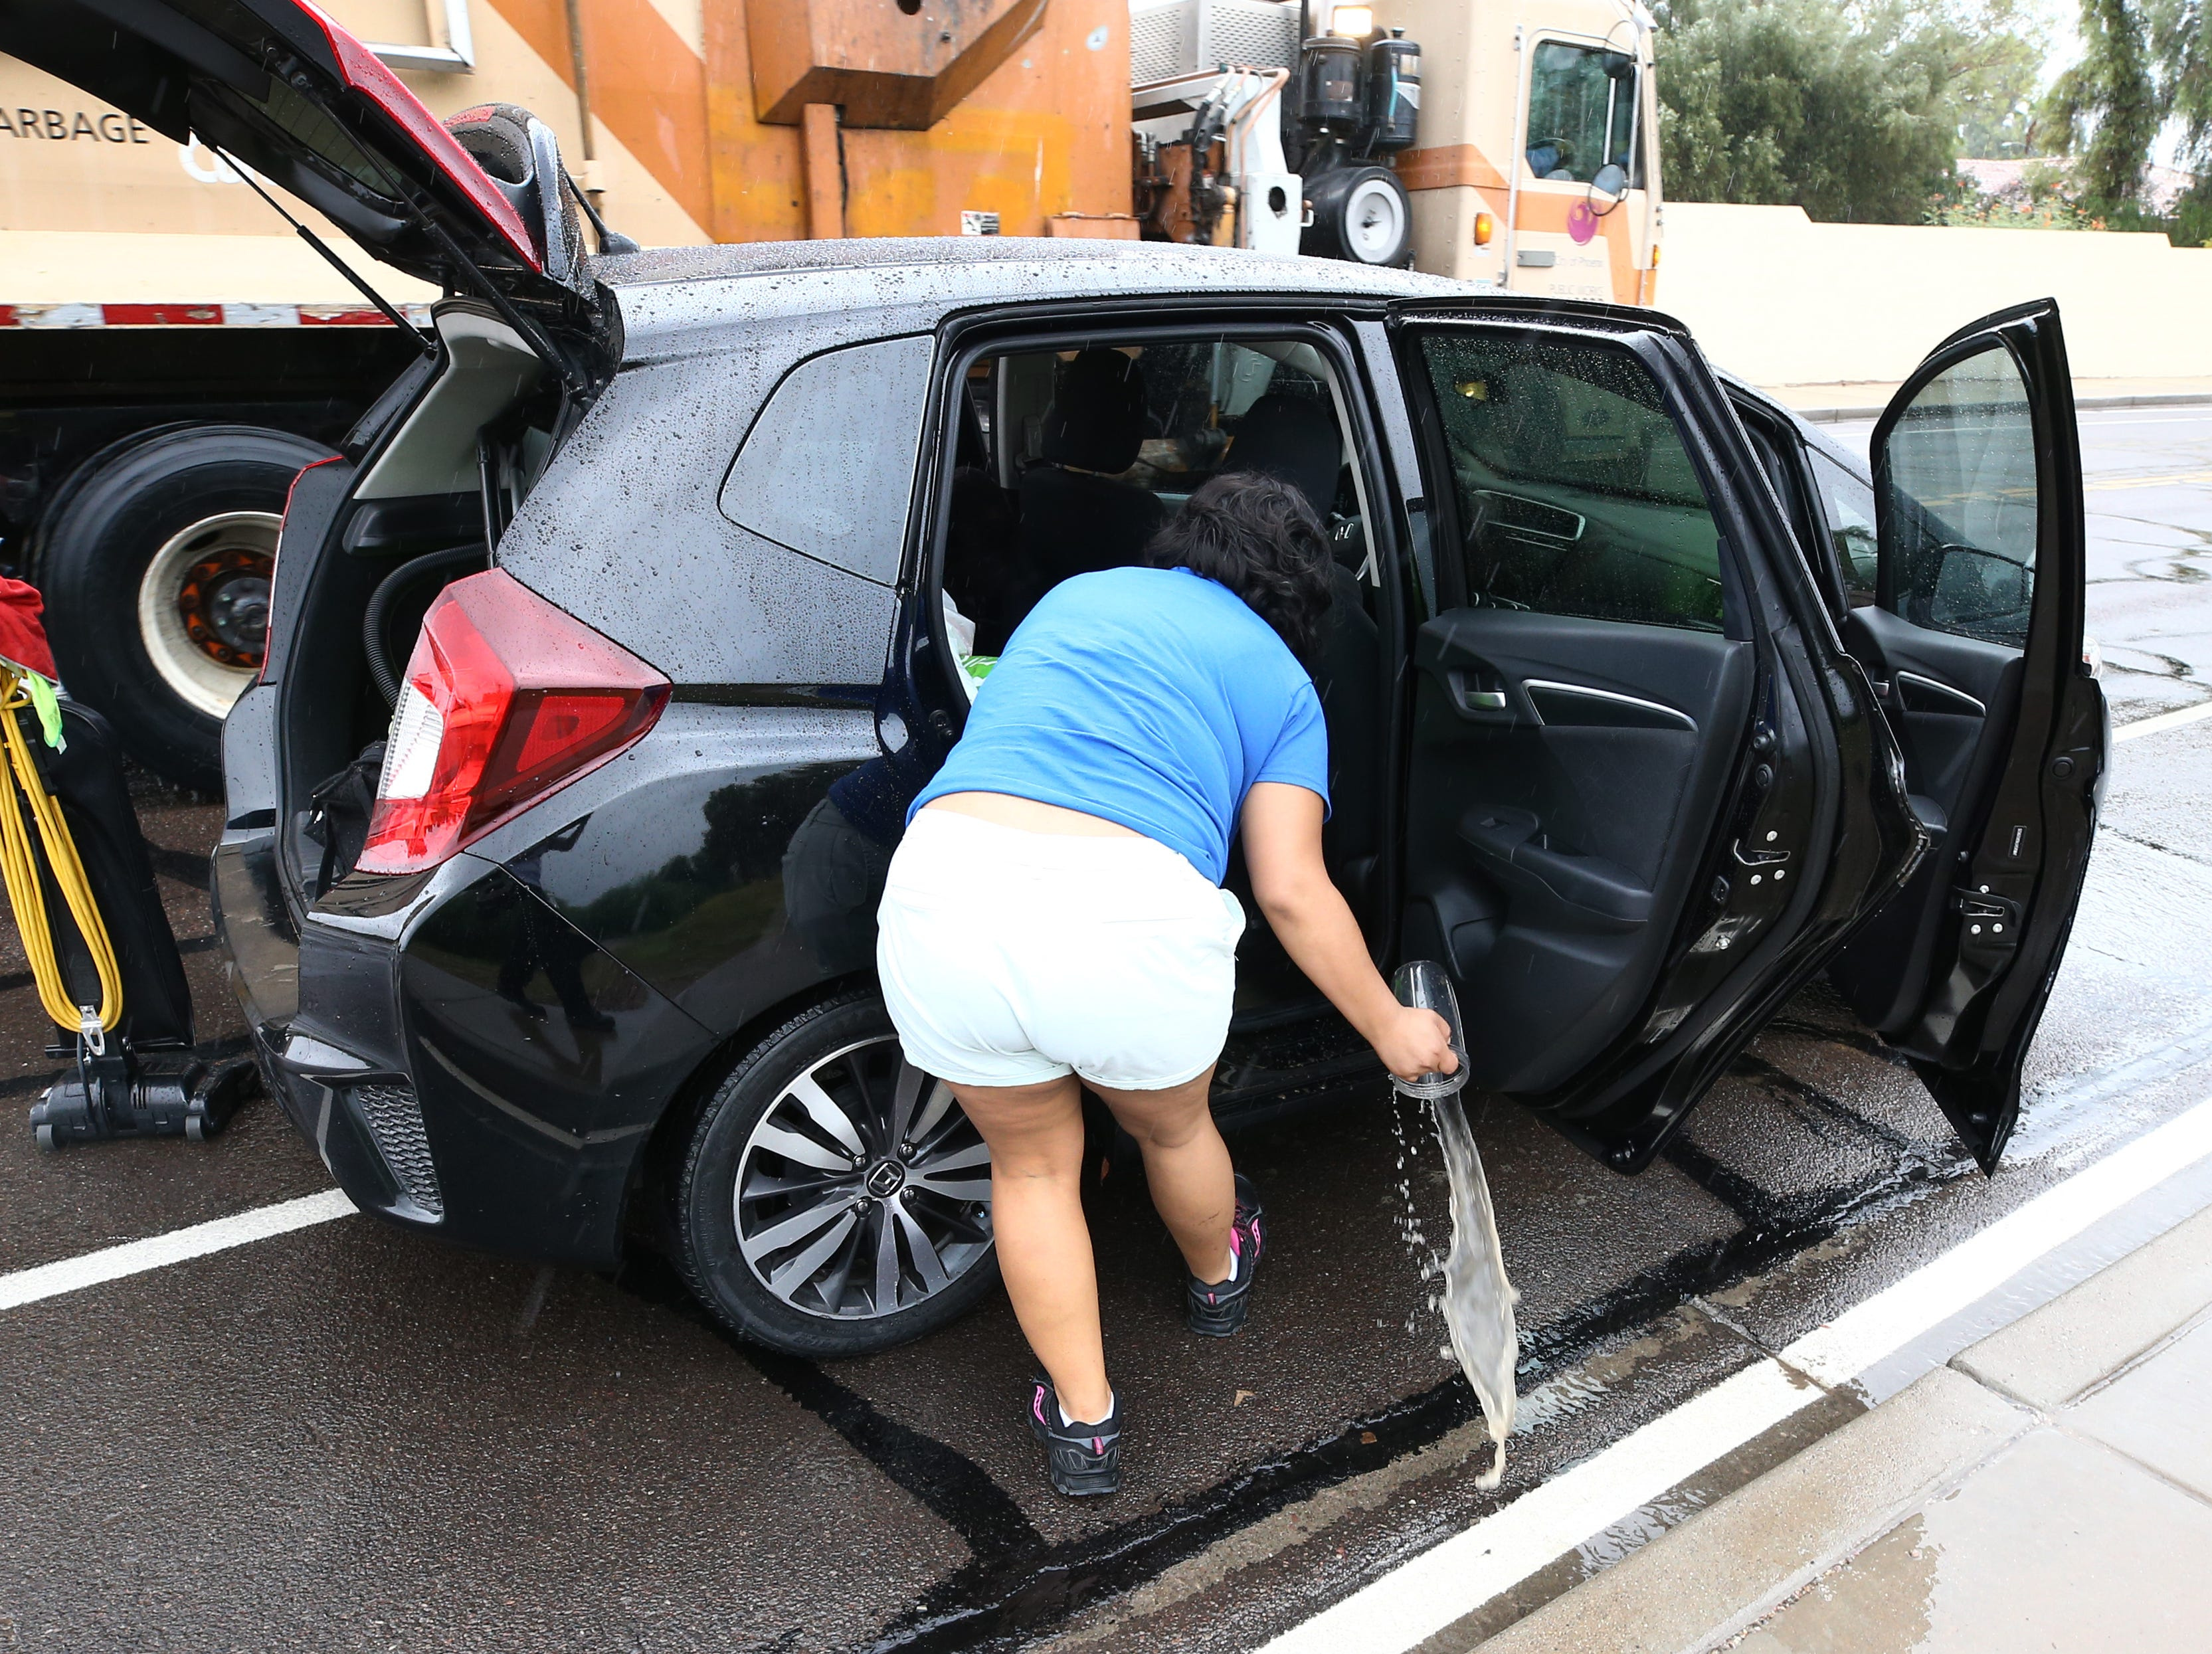 A motorist scoops flood water from her car after being caught in flood waters that covered Tatum Boulevard north of Shea Boulevard in Phoenix on Oct. 2, 2018.